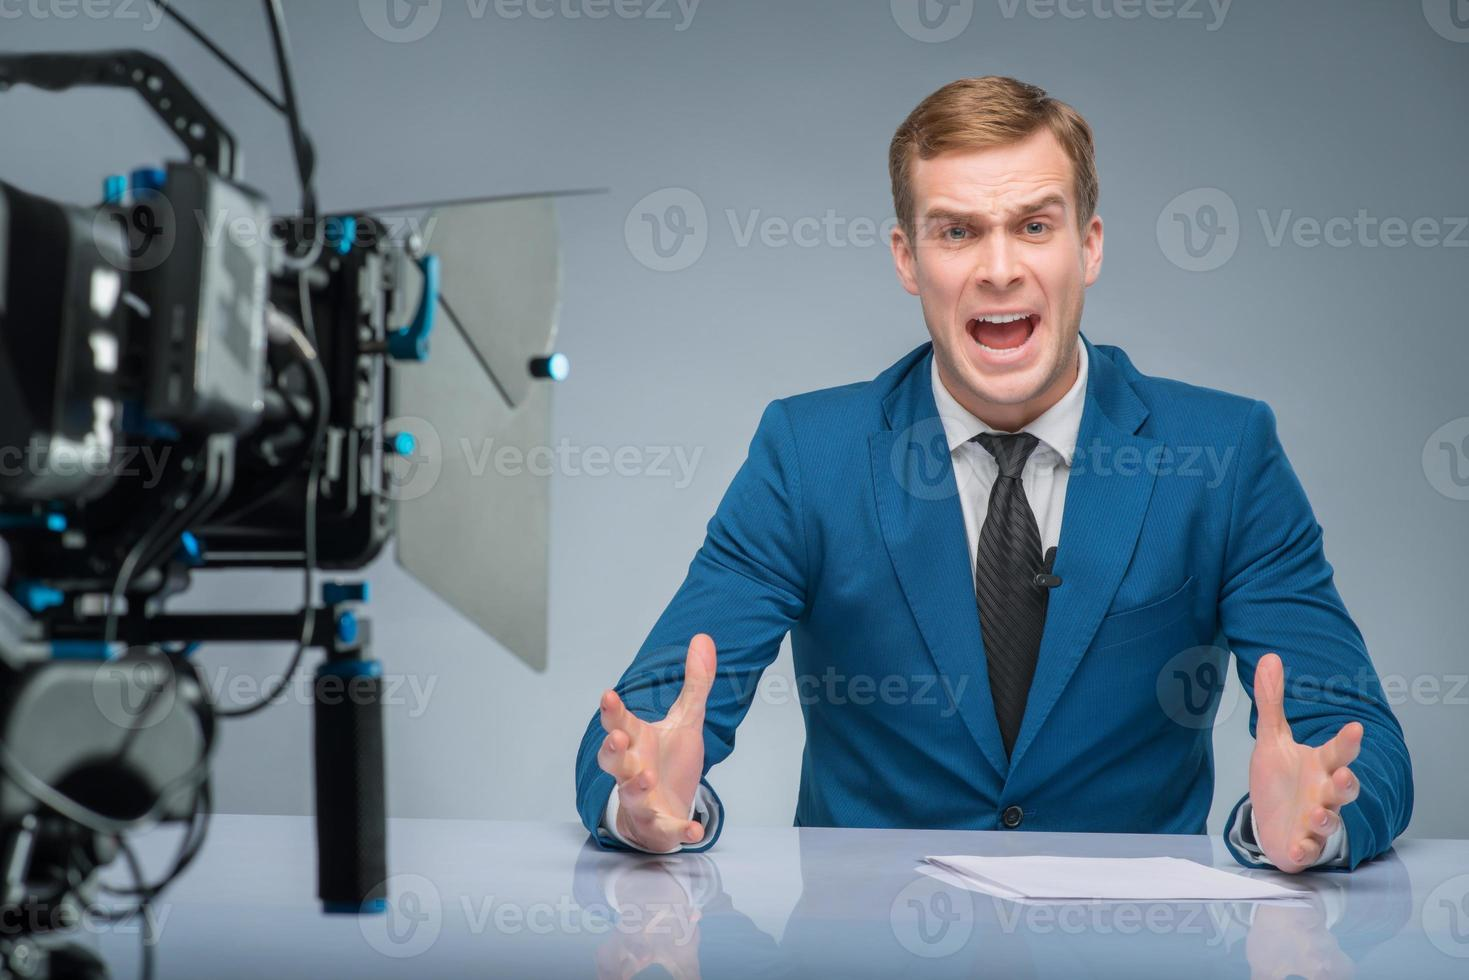 Newsman is extremely stressed out photo